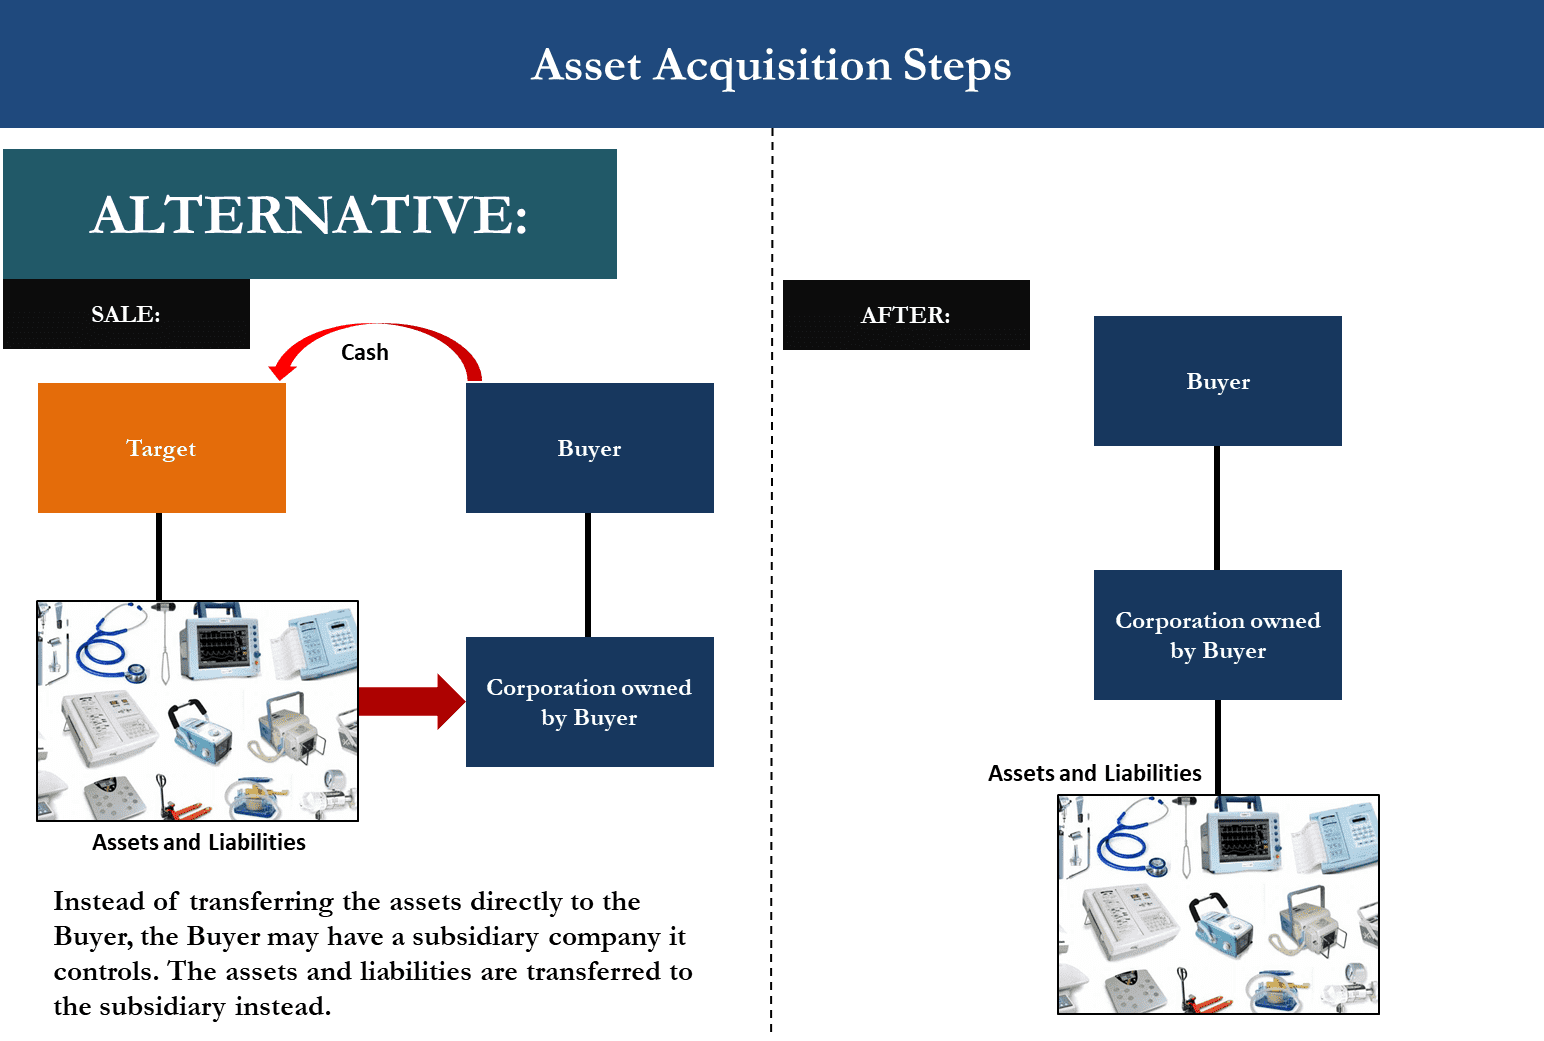 M&A Asset Acquisition Diagram showing Alternative model where assets are transferred to Buyer subsidiary